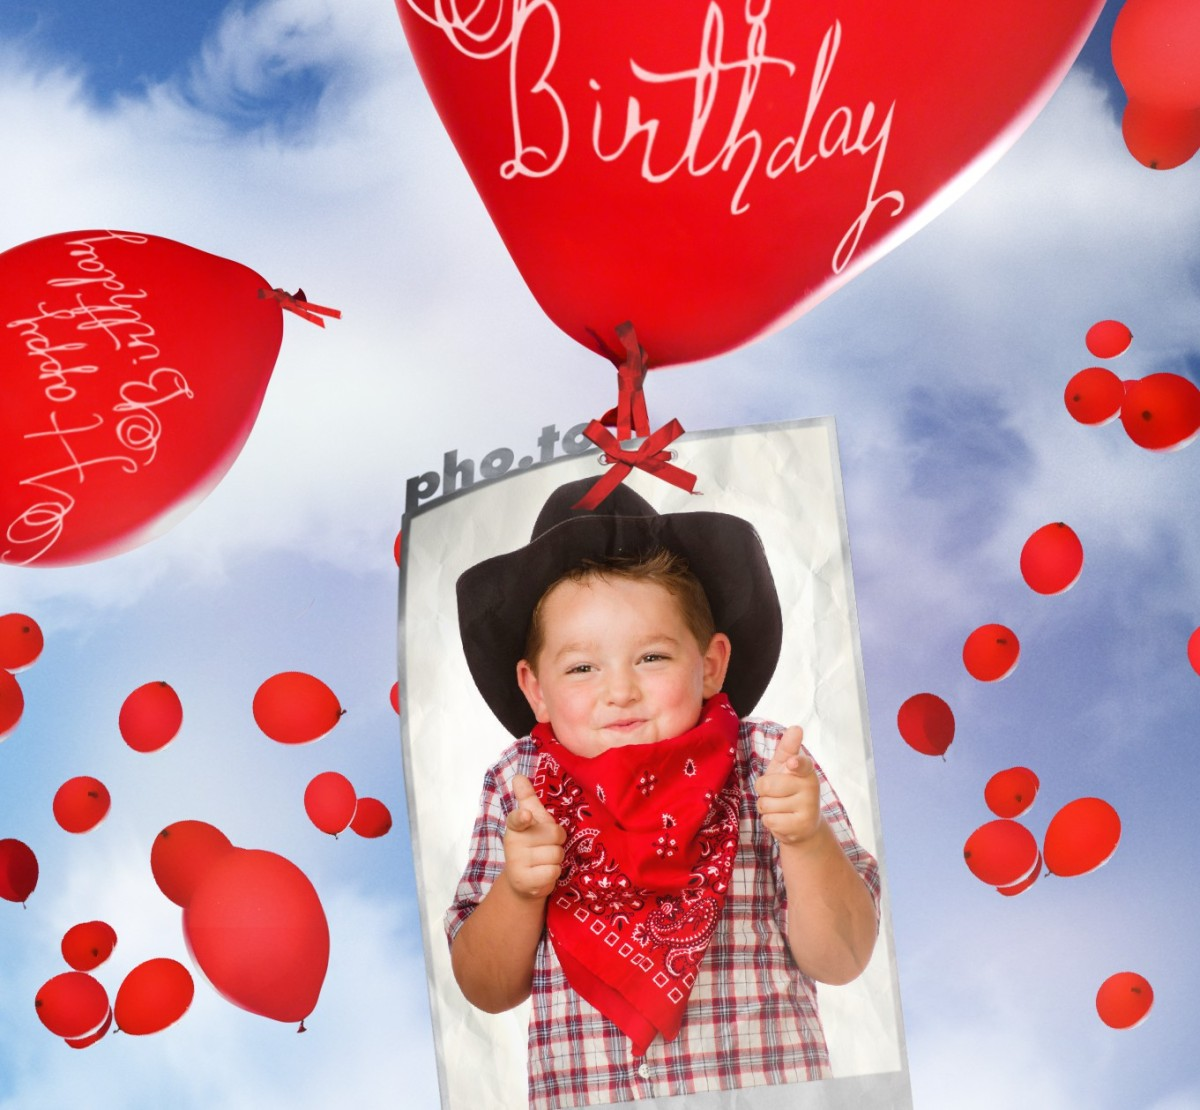 Birthday ecard with Birthday Balloons. Printable template.